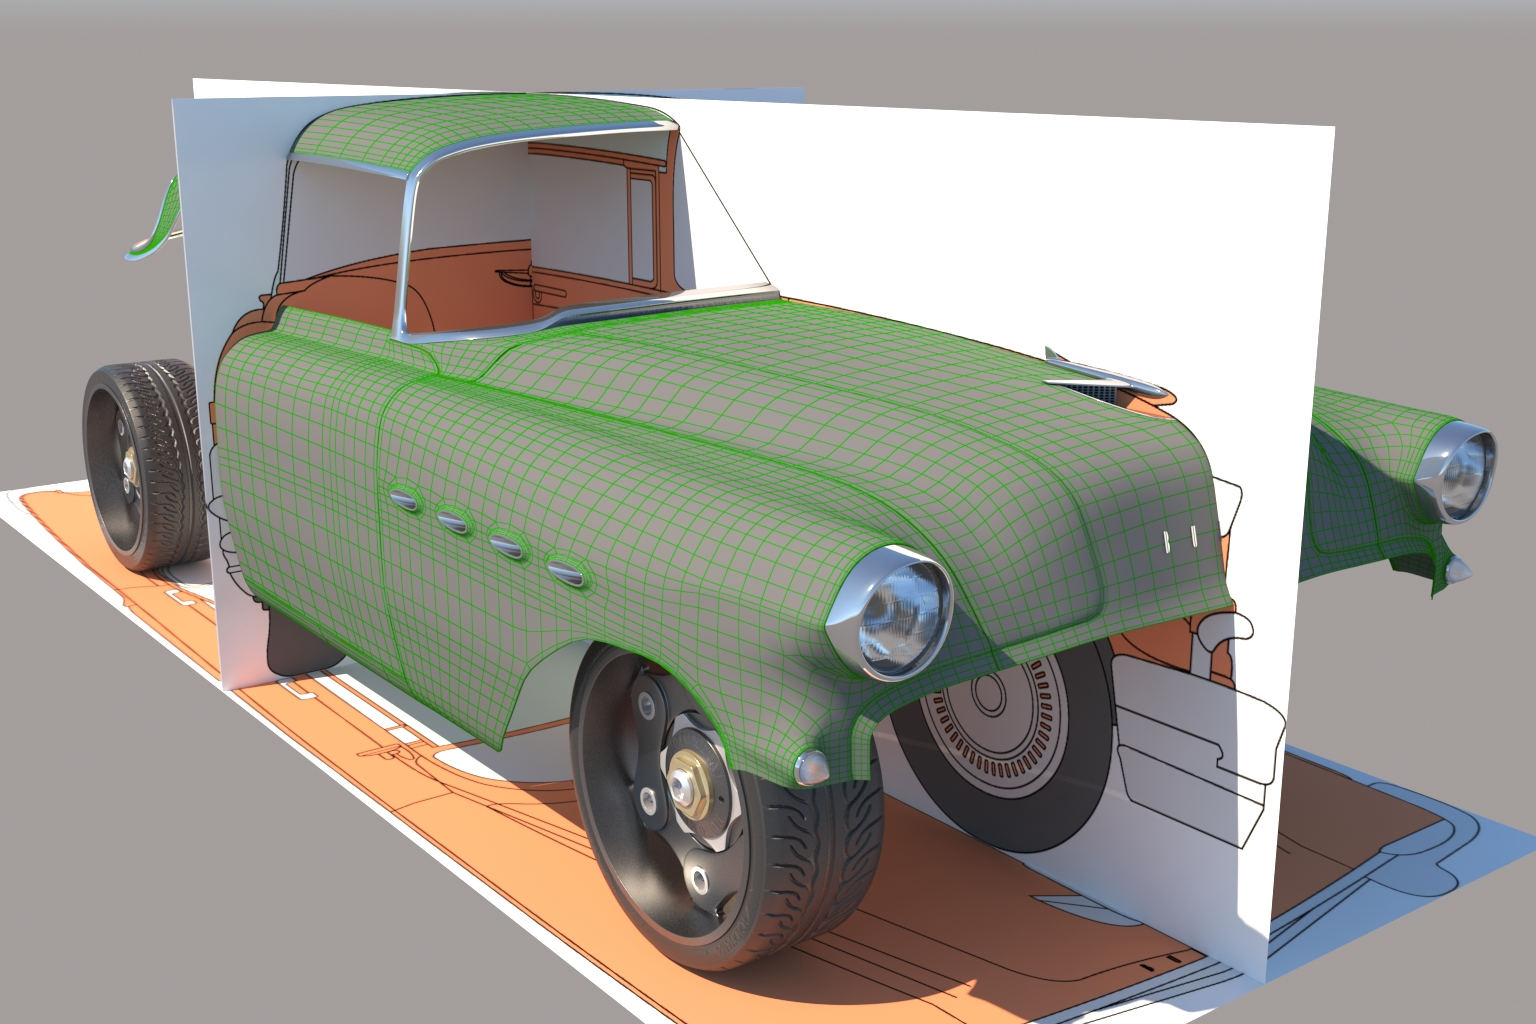 3D Car Render Challenge 2019: Tom